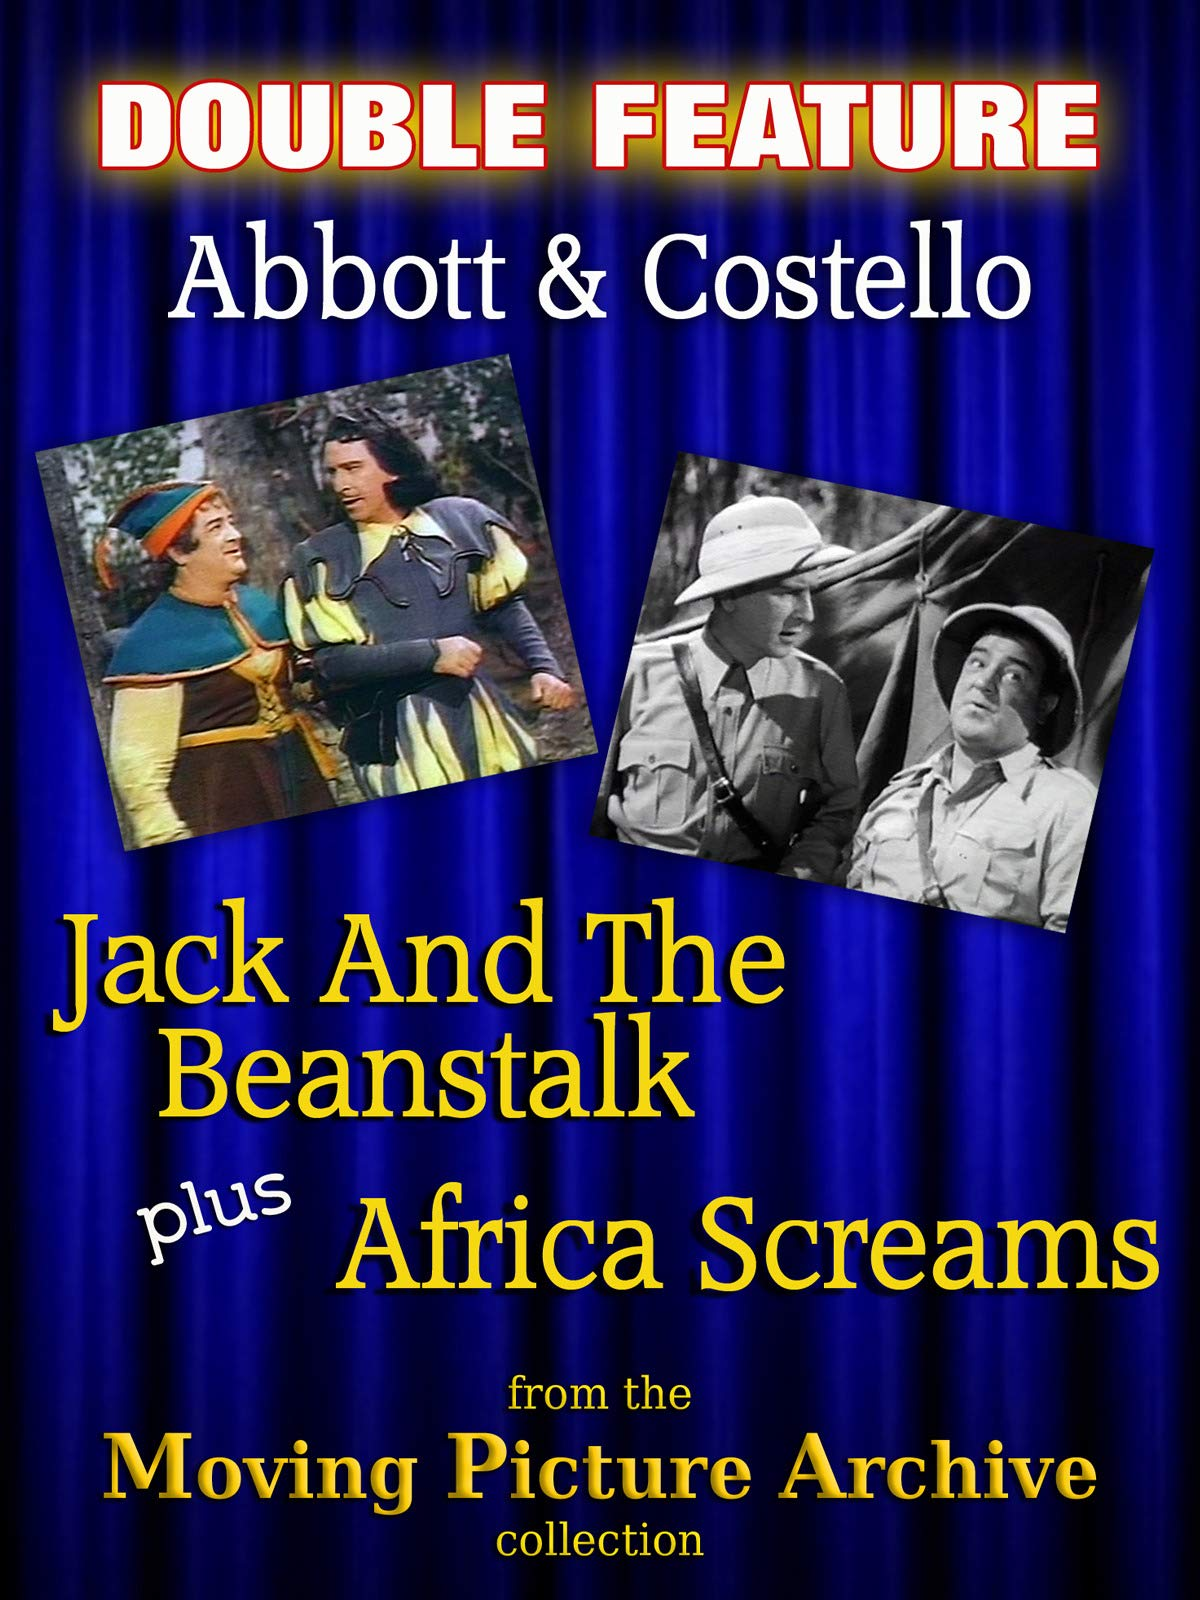 Abbott & Costello Double Feature - Jack And The Beanstalk & Africa Screams on Amazon Prime Video UK